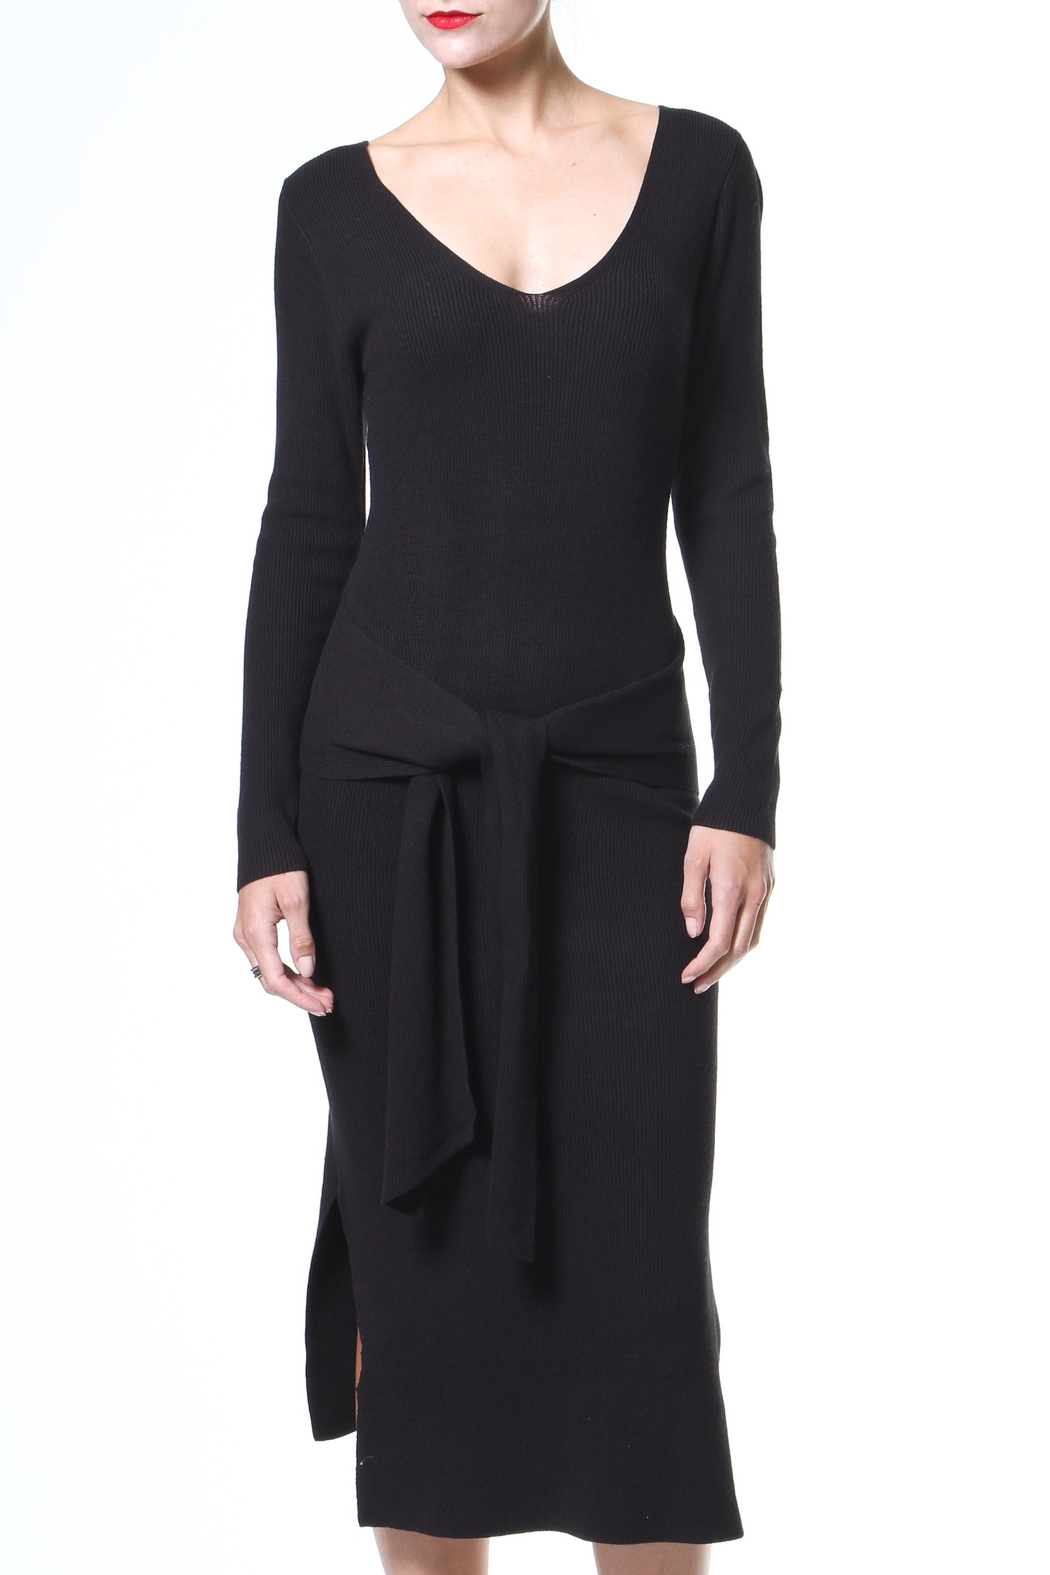 Madonna & Co Tie Front Lbd - Main Image